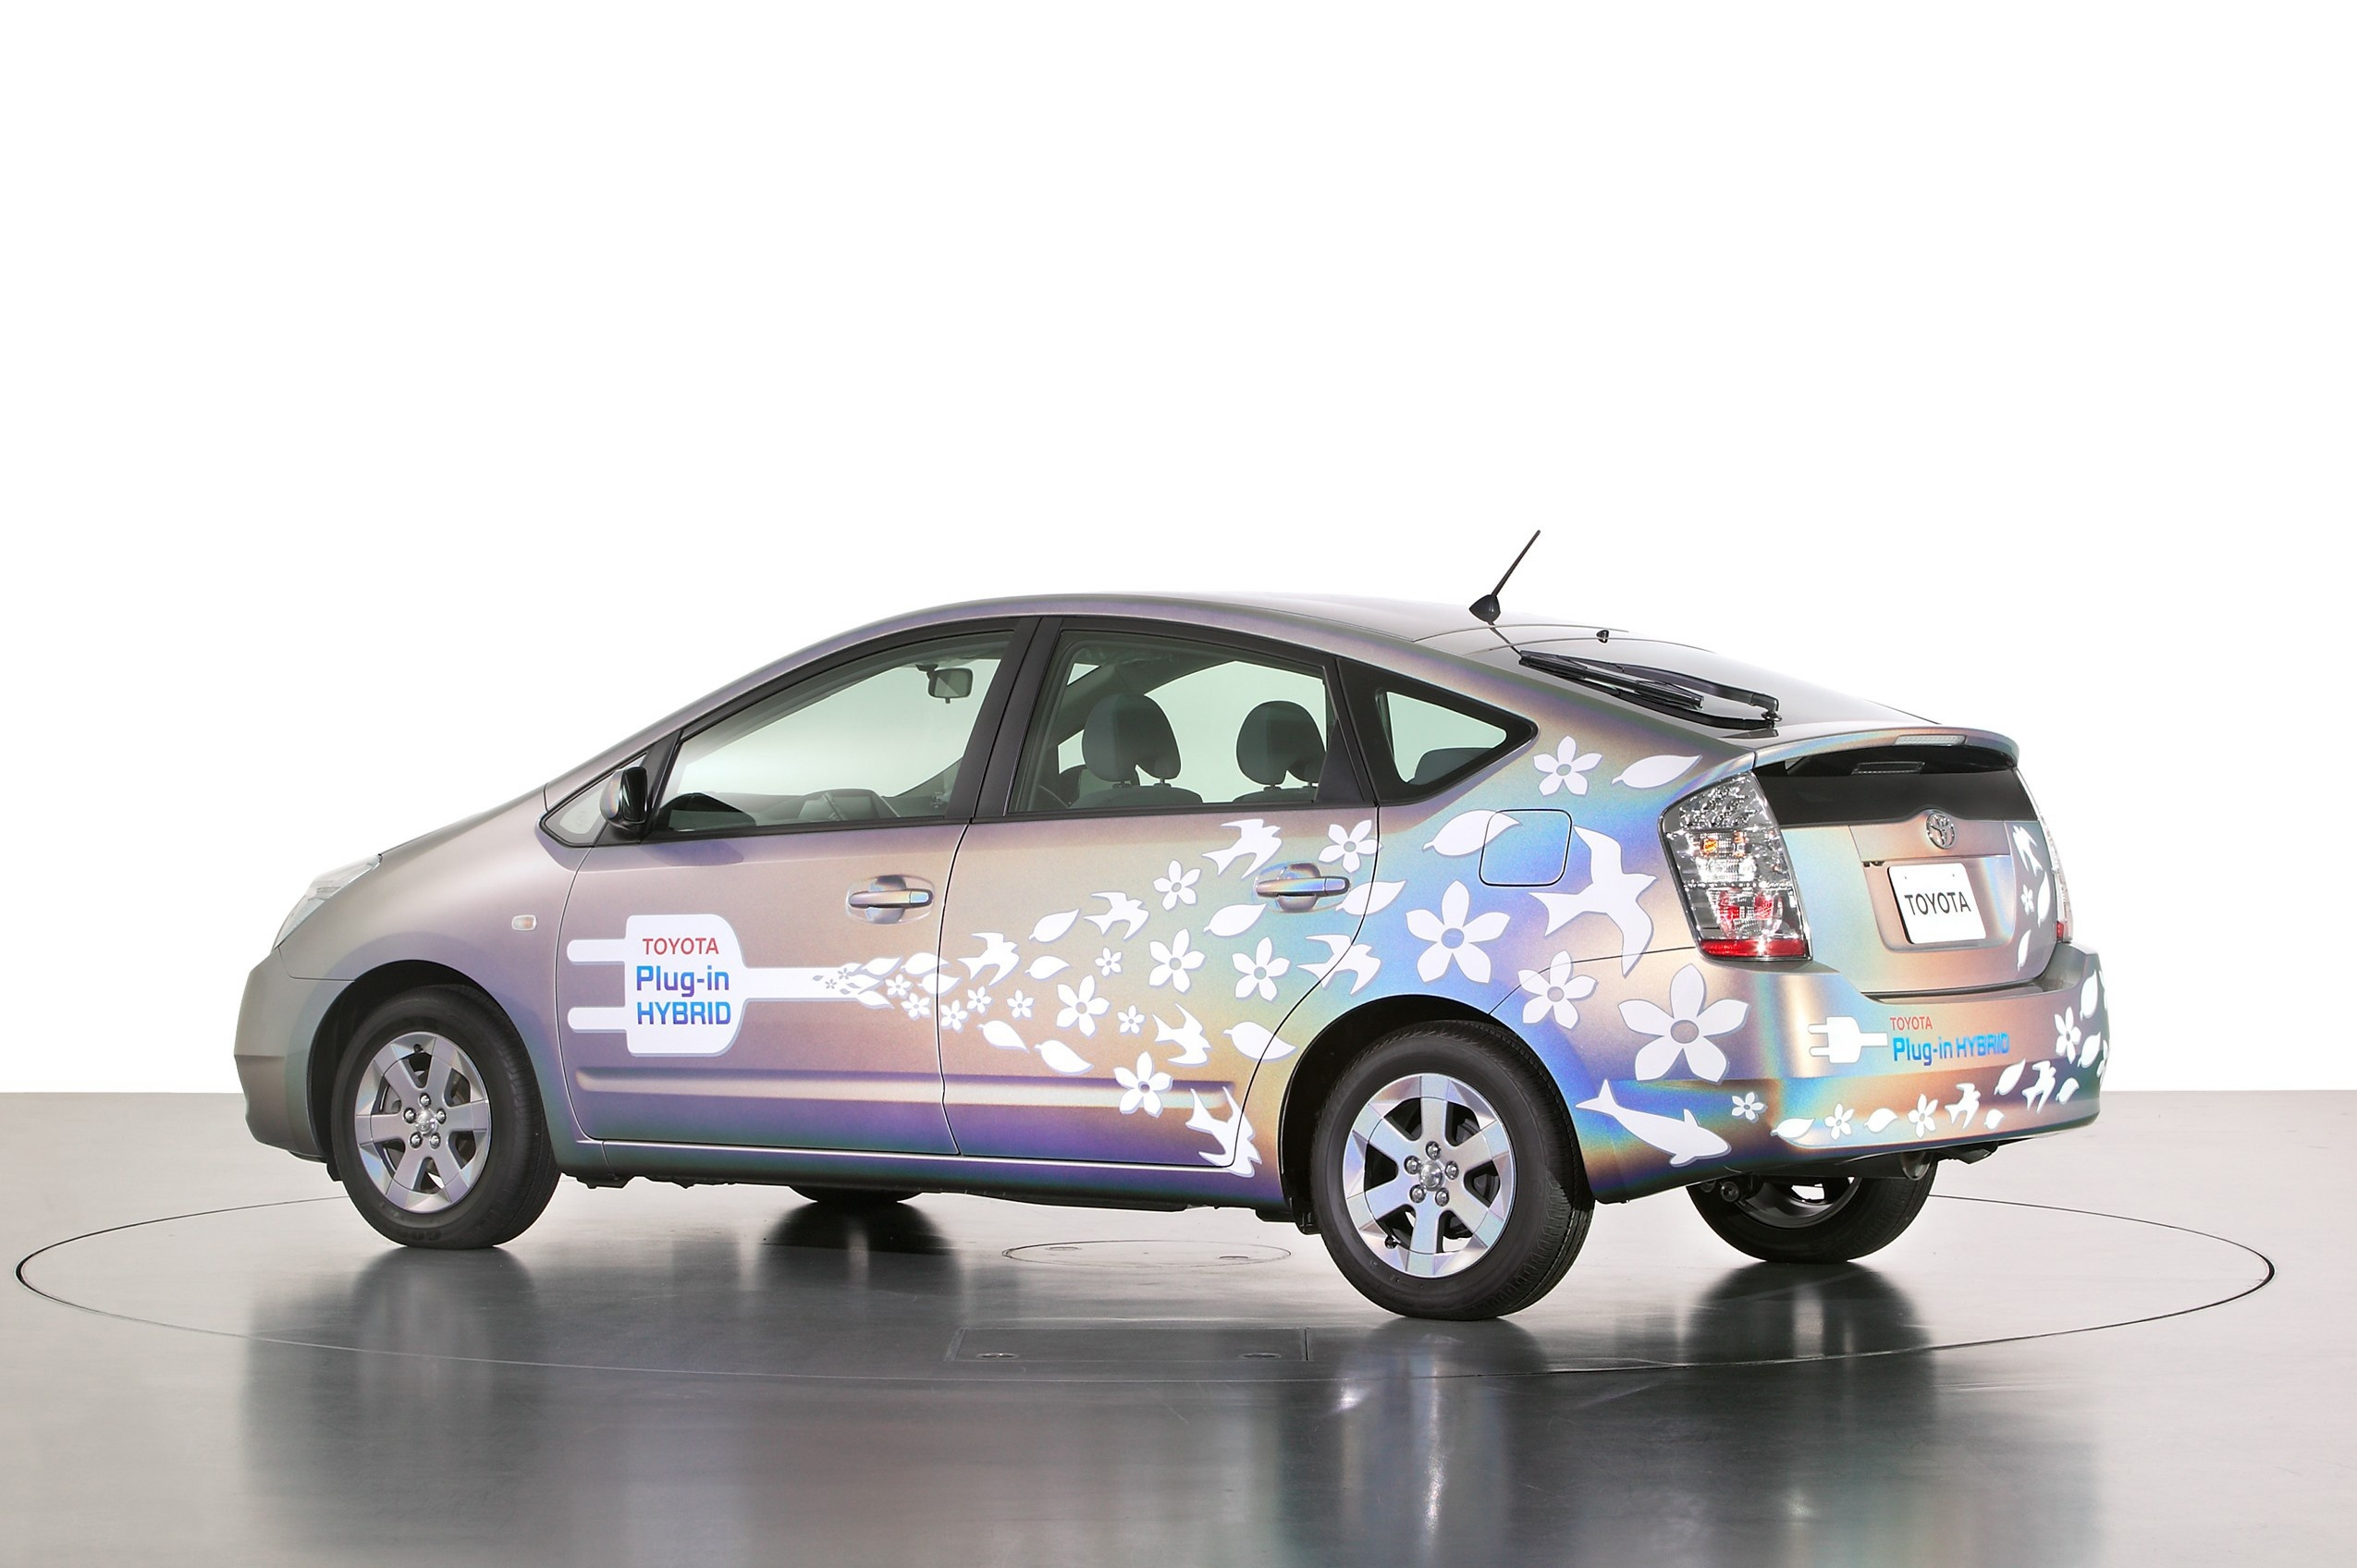 plug in hybrid vs pure electric cars It's often said that plug-in hybrids are the gateway drug to pure battery-electric vehicles, exposing drivers to the electric-car experience without looming range anxiety.